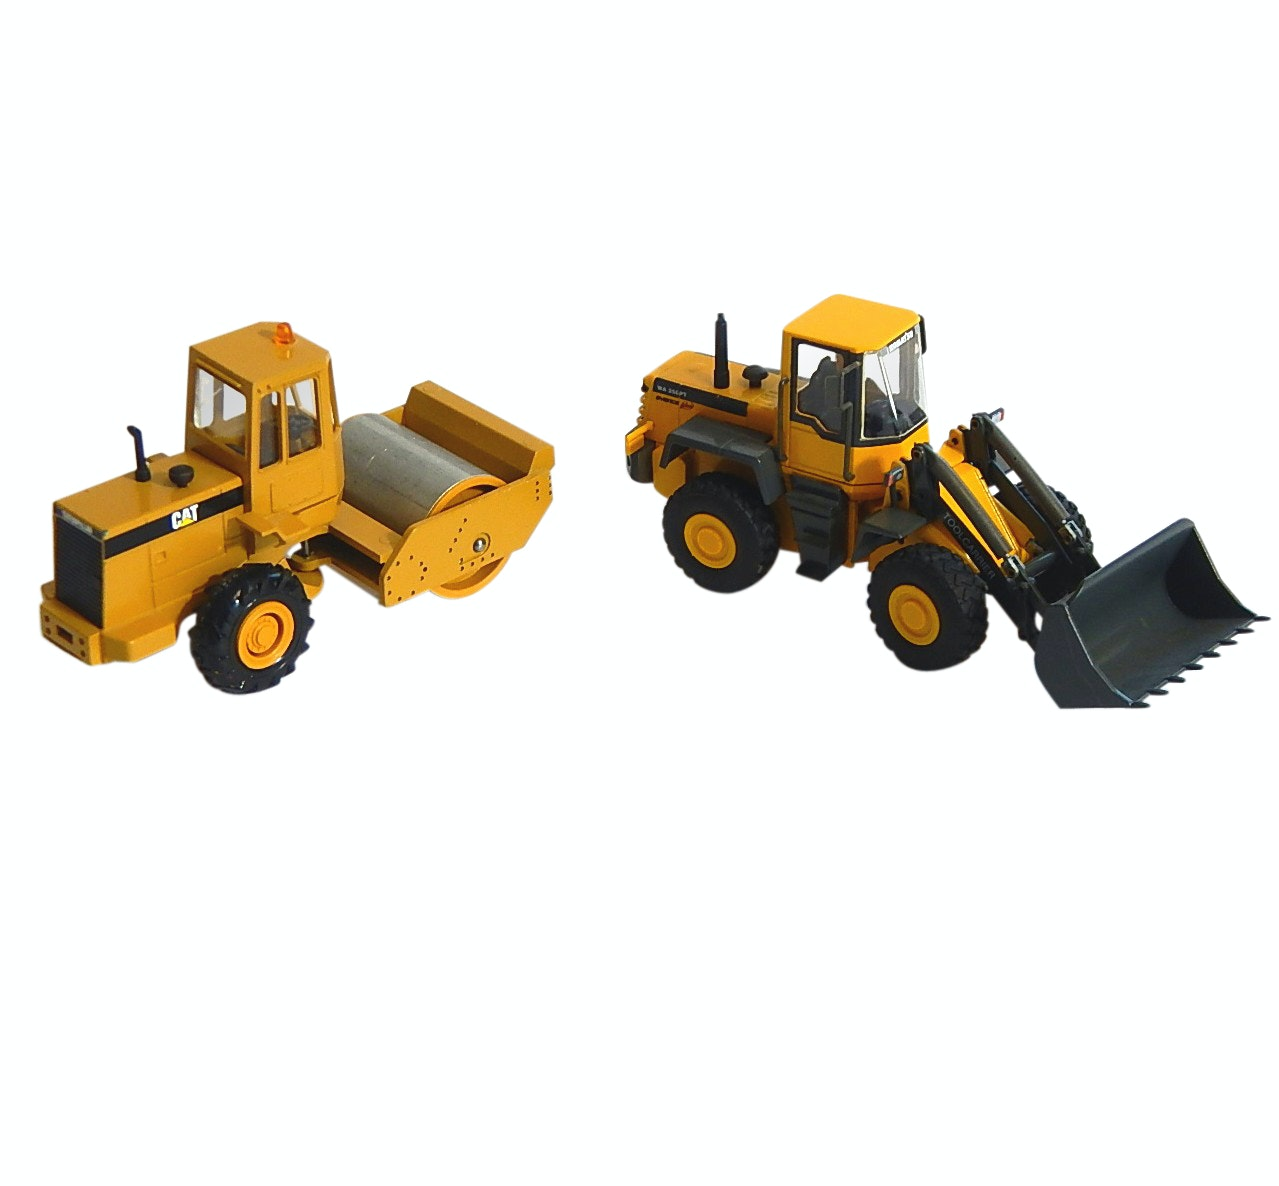 Conrad 1:50 Caterpillar Asphalt Drum Compactor and Komatsu WA250 Tool Carrier